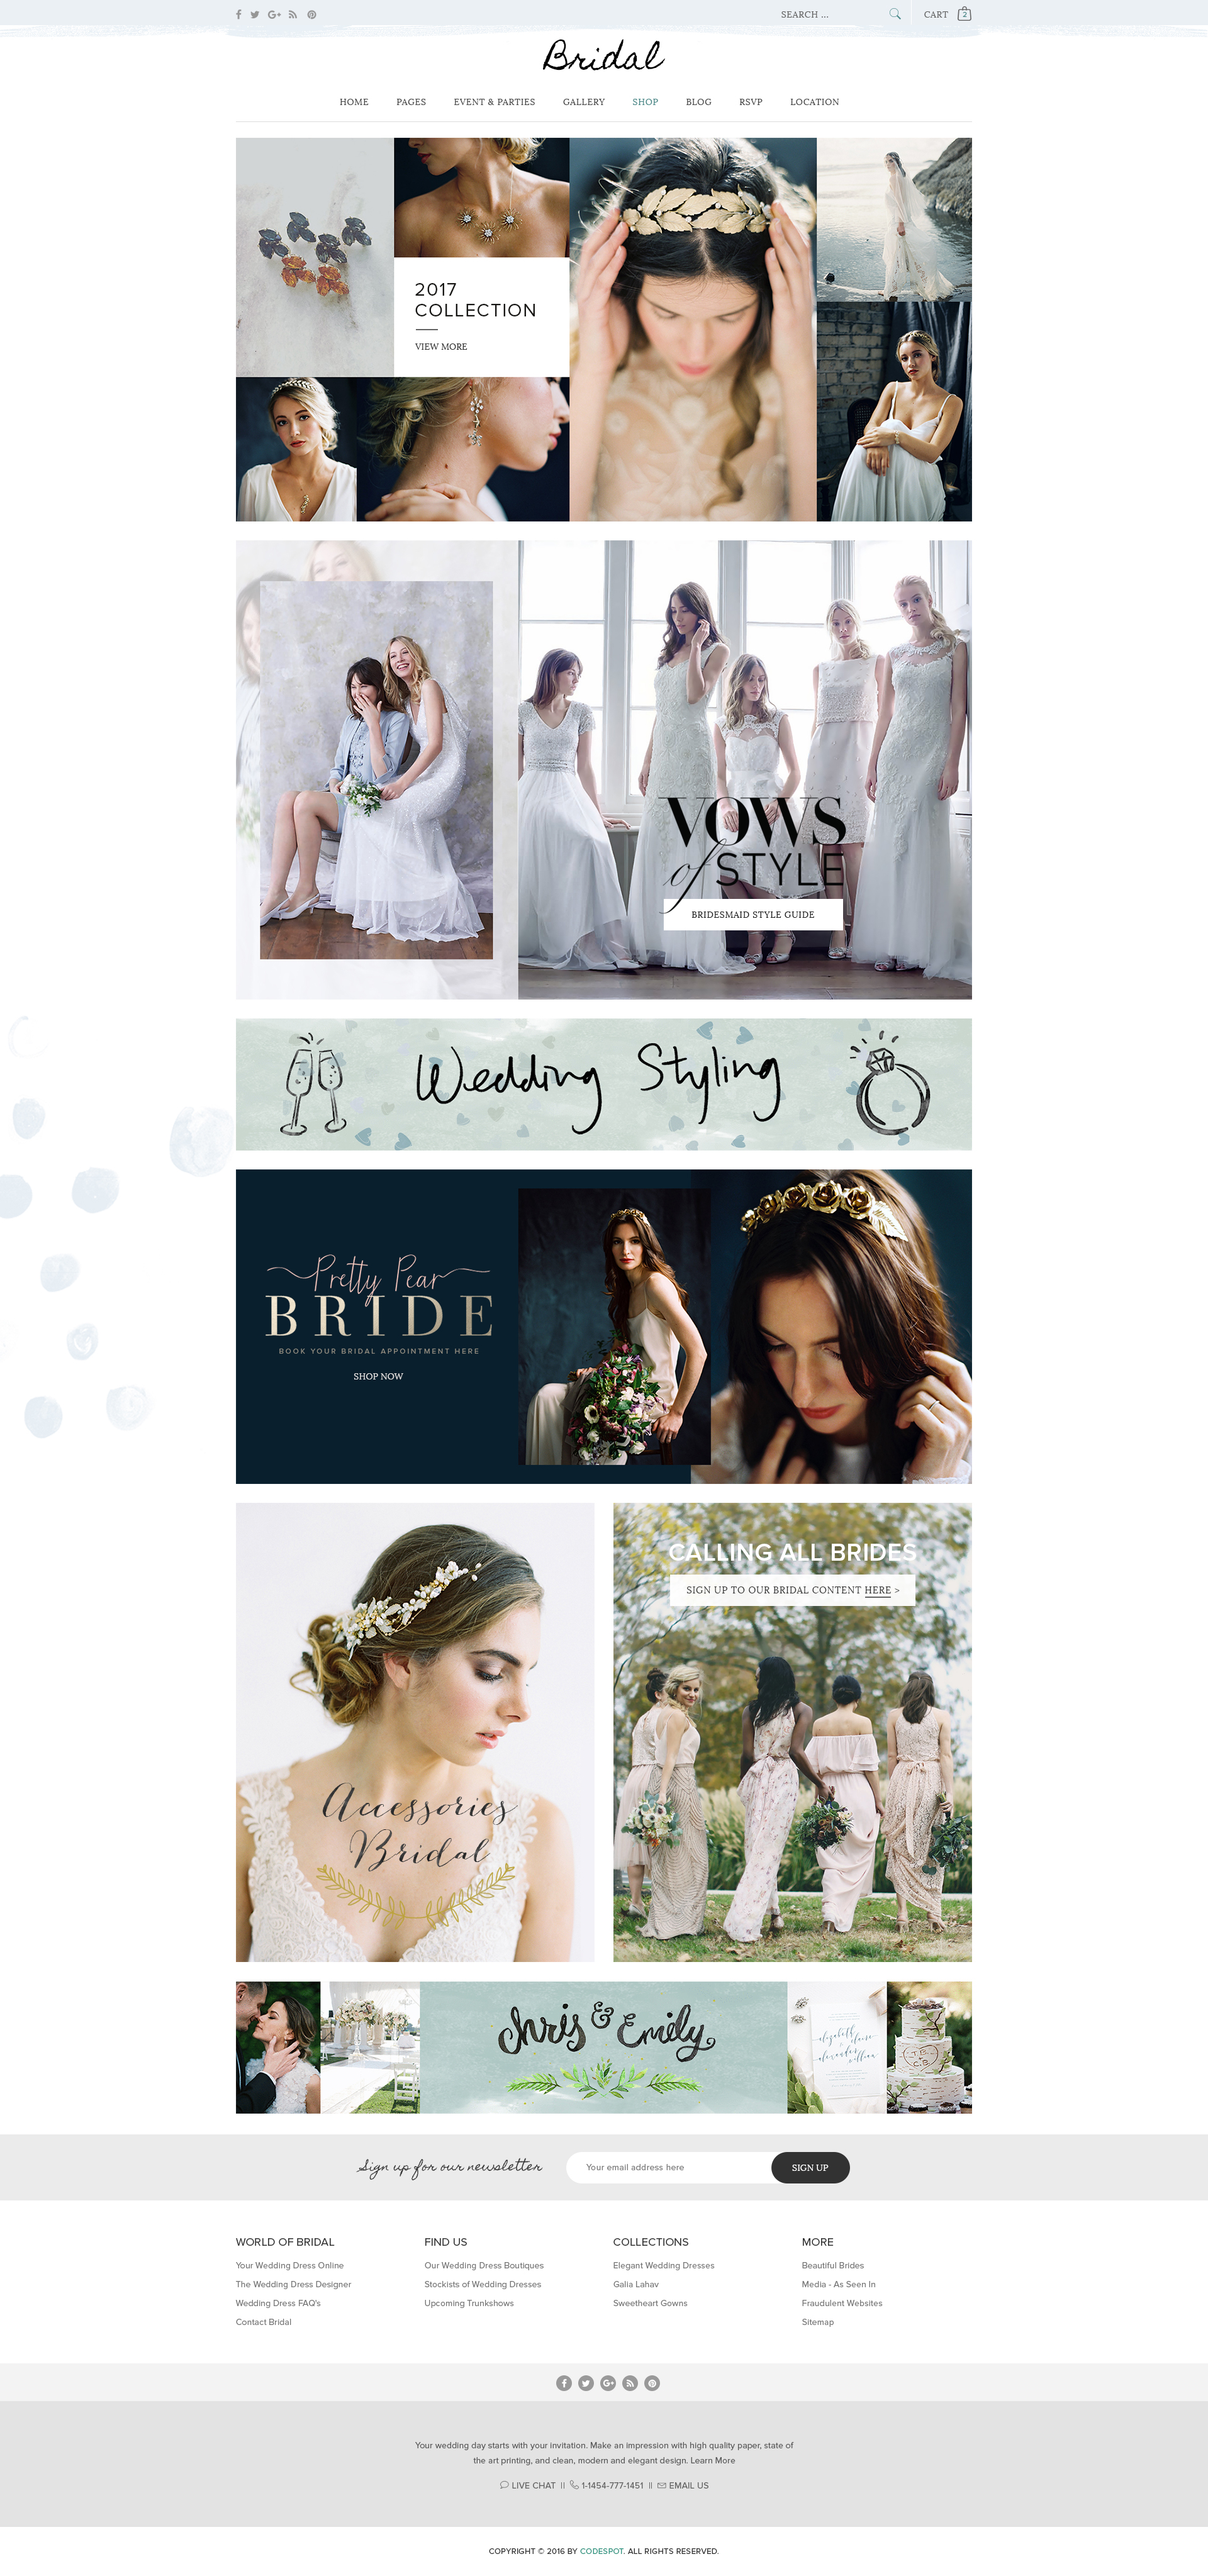 Bridal - Wedding WordPress Theme by tvlgiao | ThemeForest